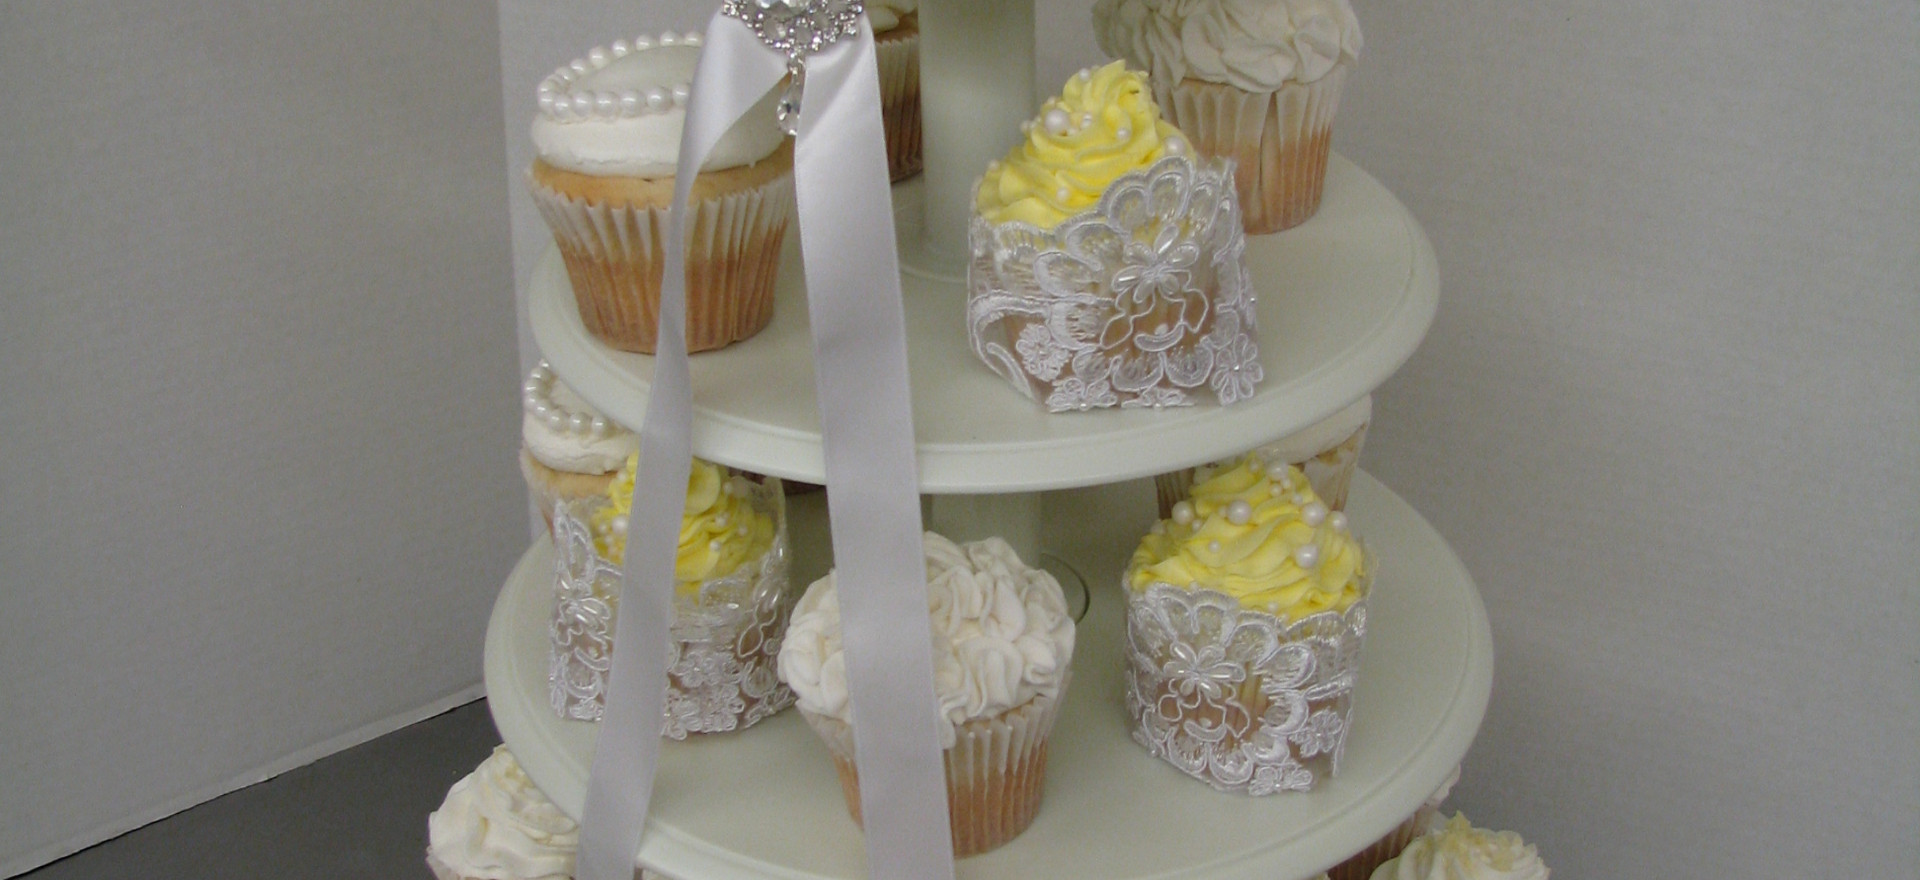 "6"" ruffle top tier and elegant cupcakes"